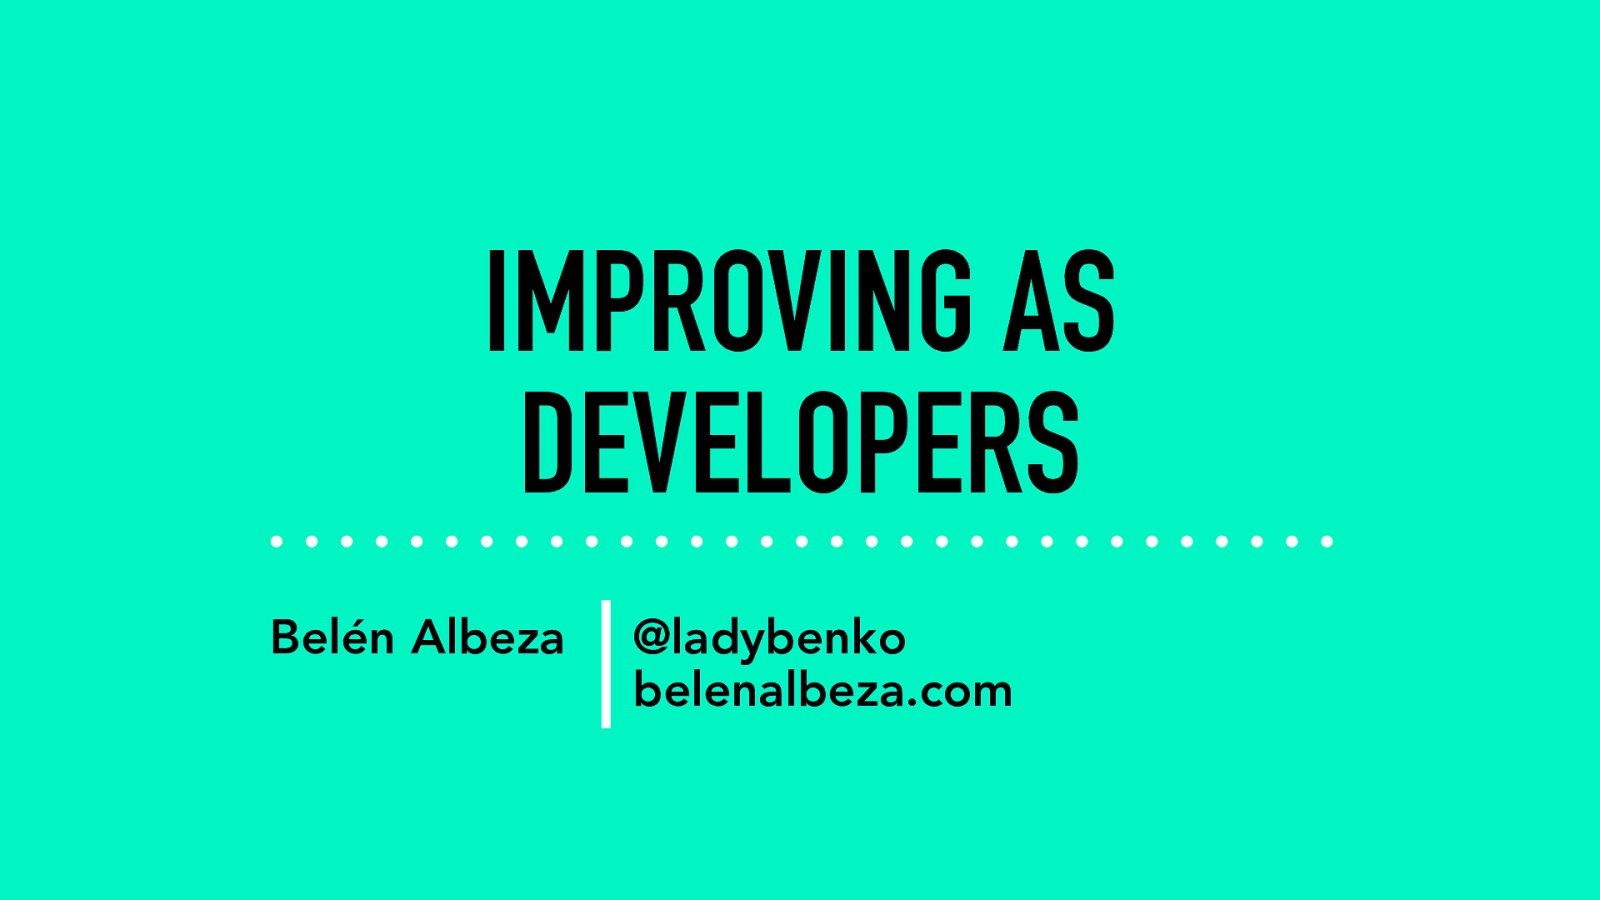 Improving as Developers